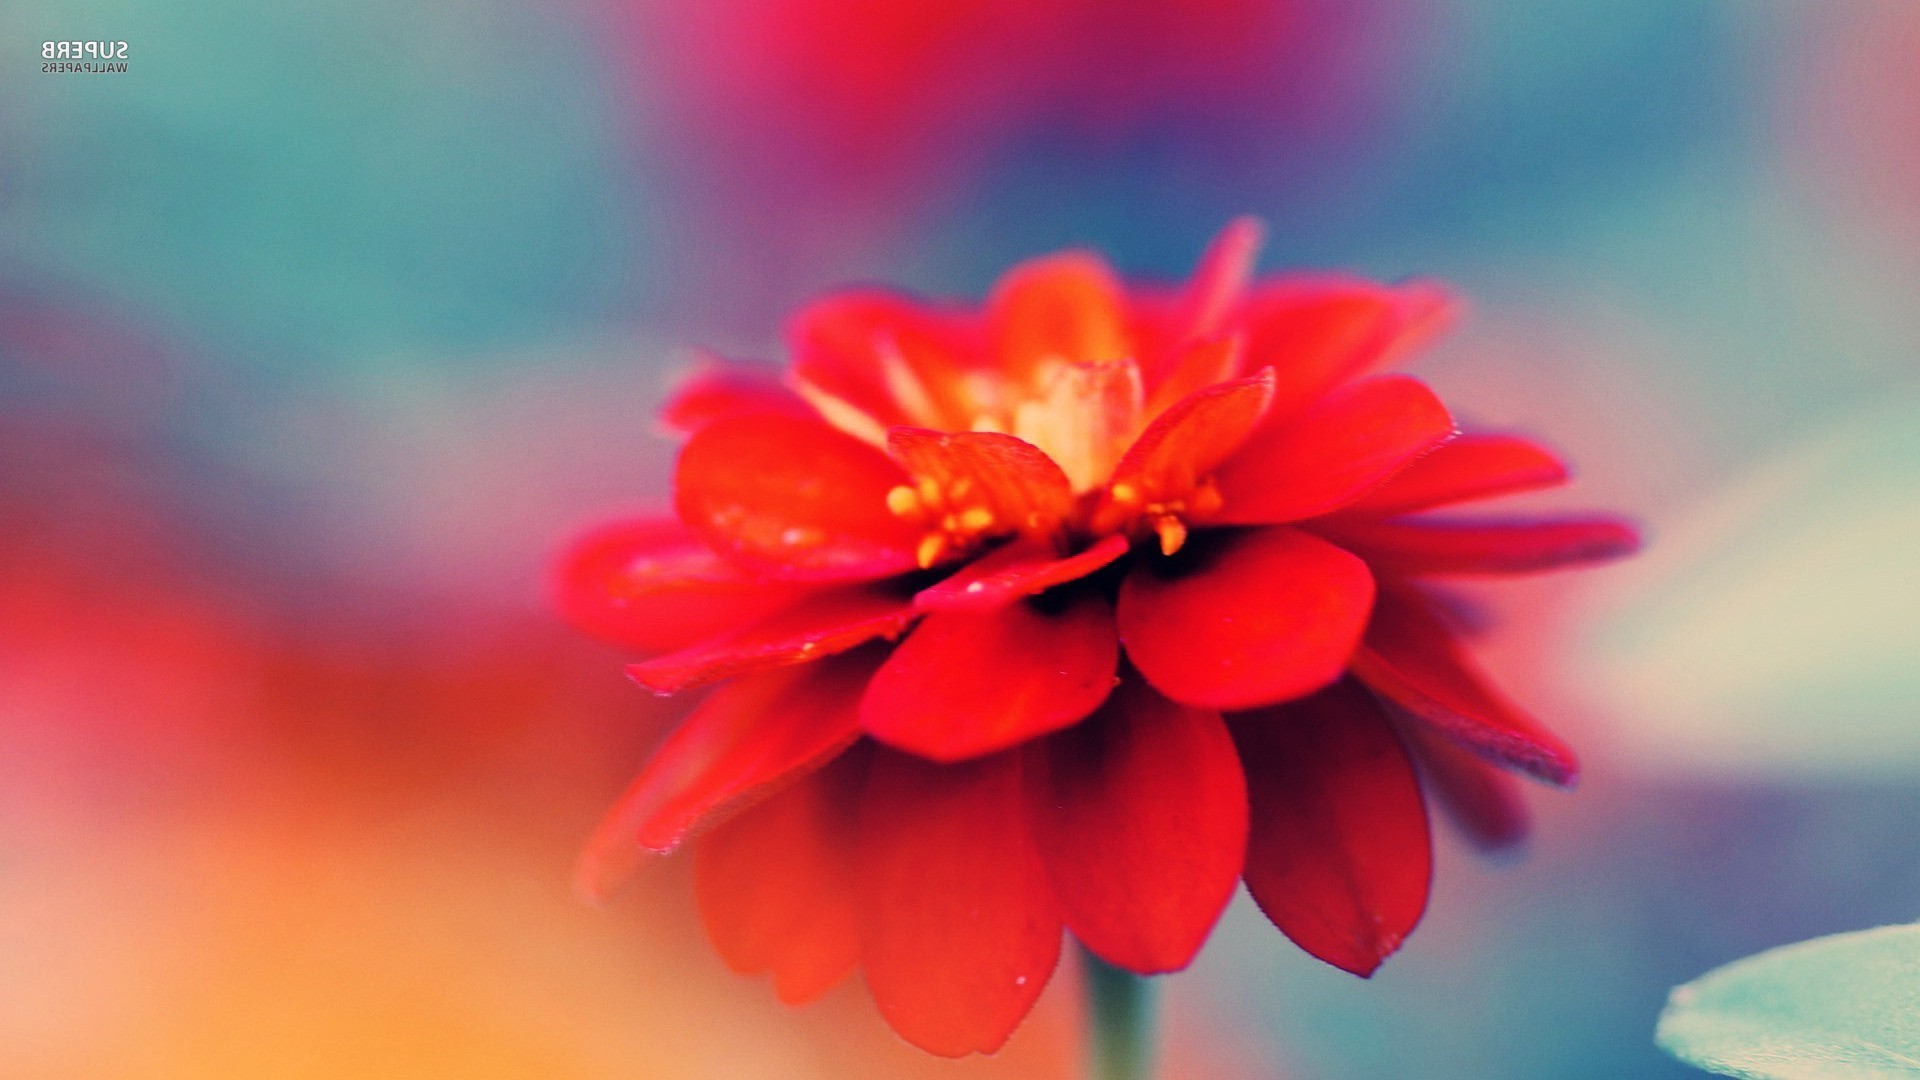 Res: 1920x1080,  flowers macro nature red flowers wallpaper and background JPG 250  kB